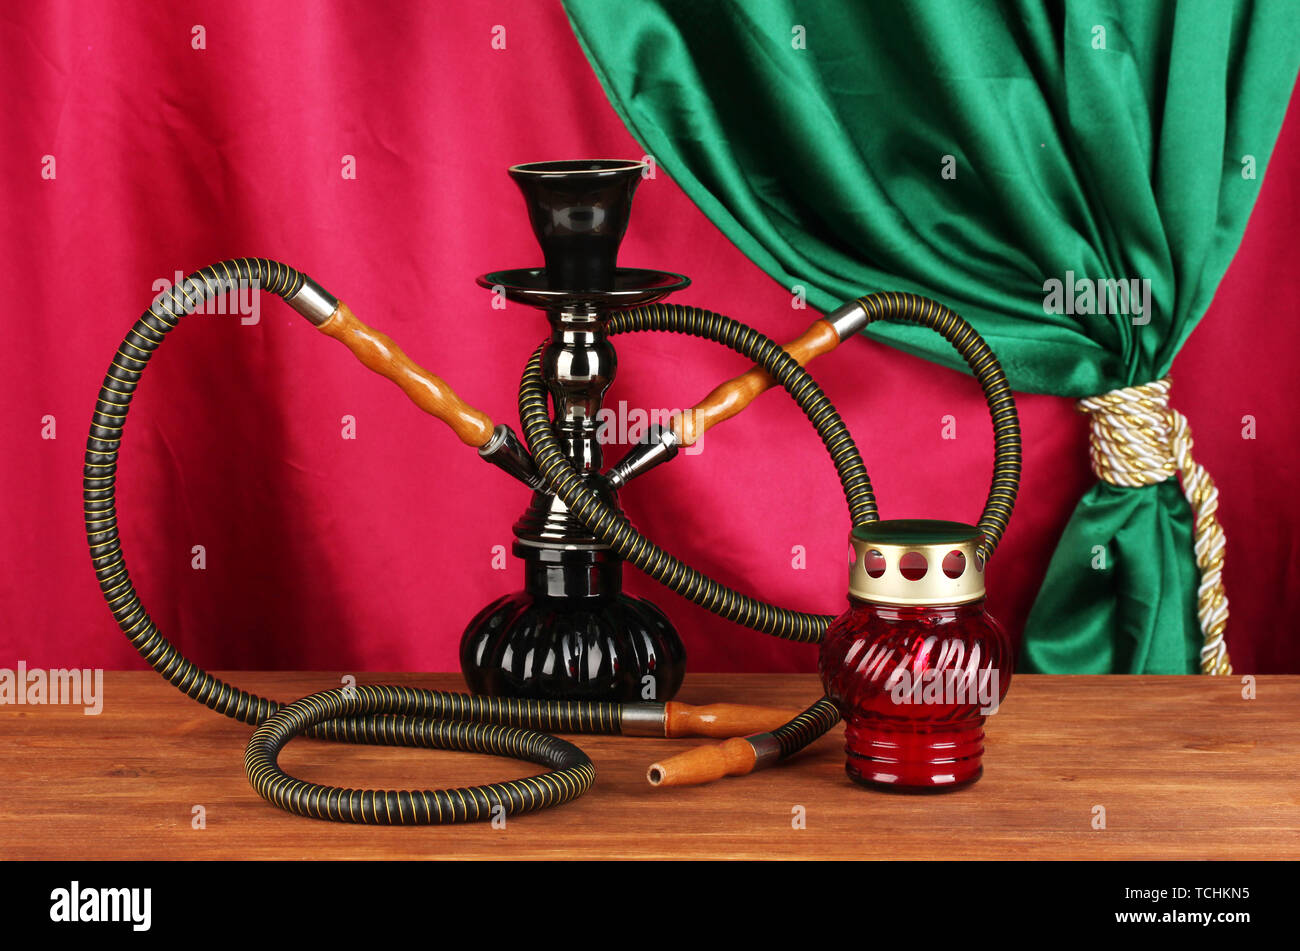 hookah on a wooden table on a background of curtain close-up - Stock Image